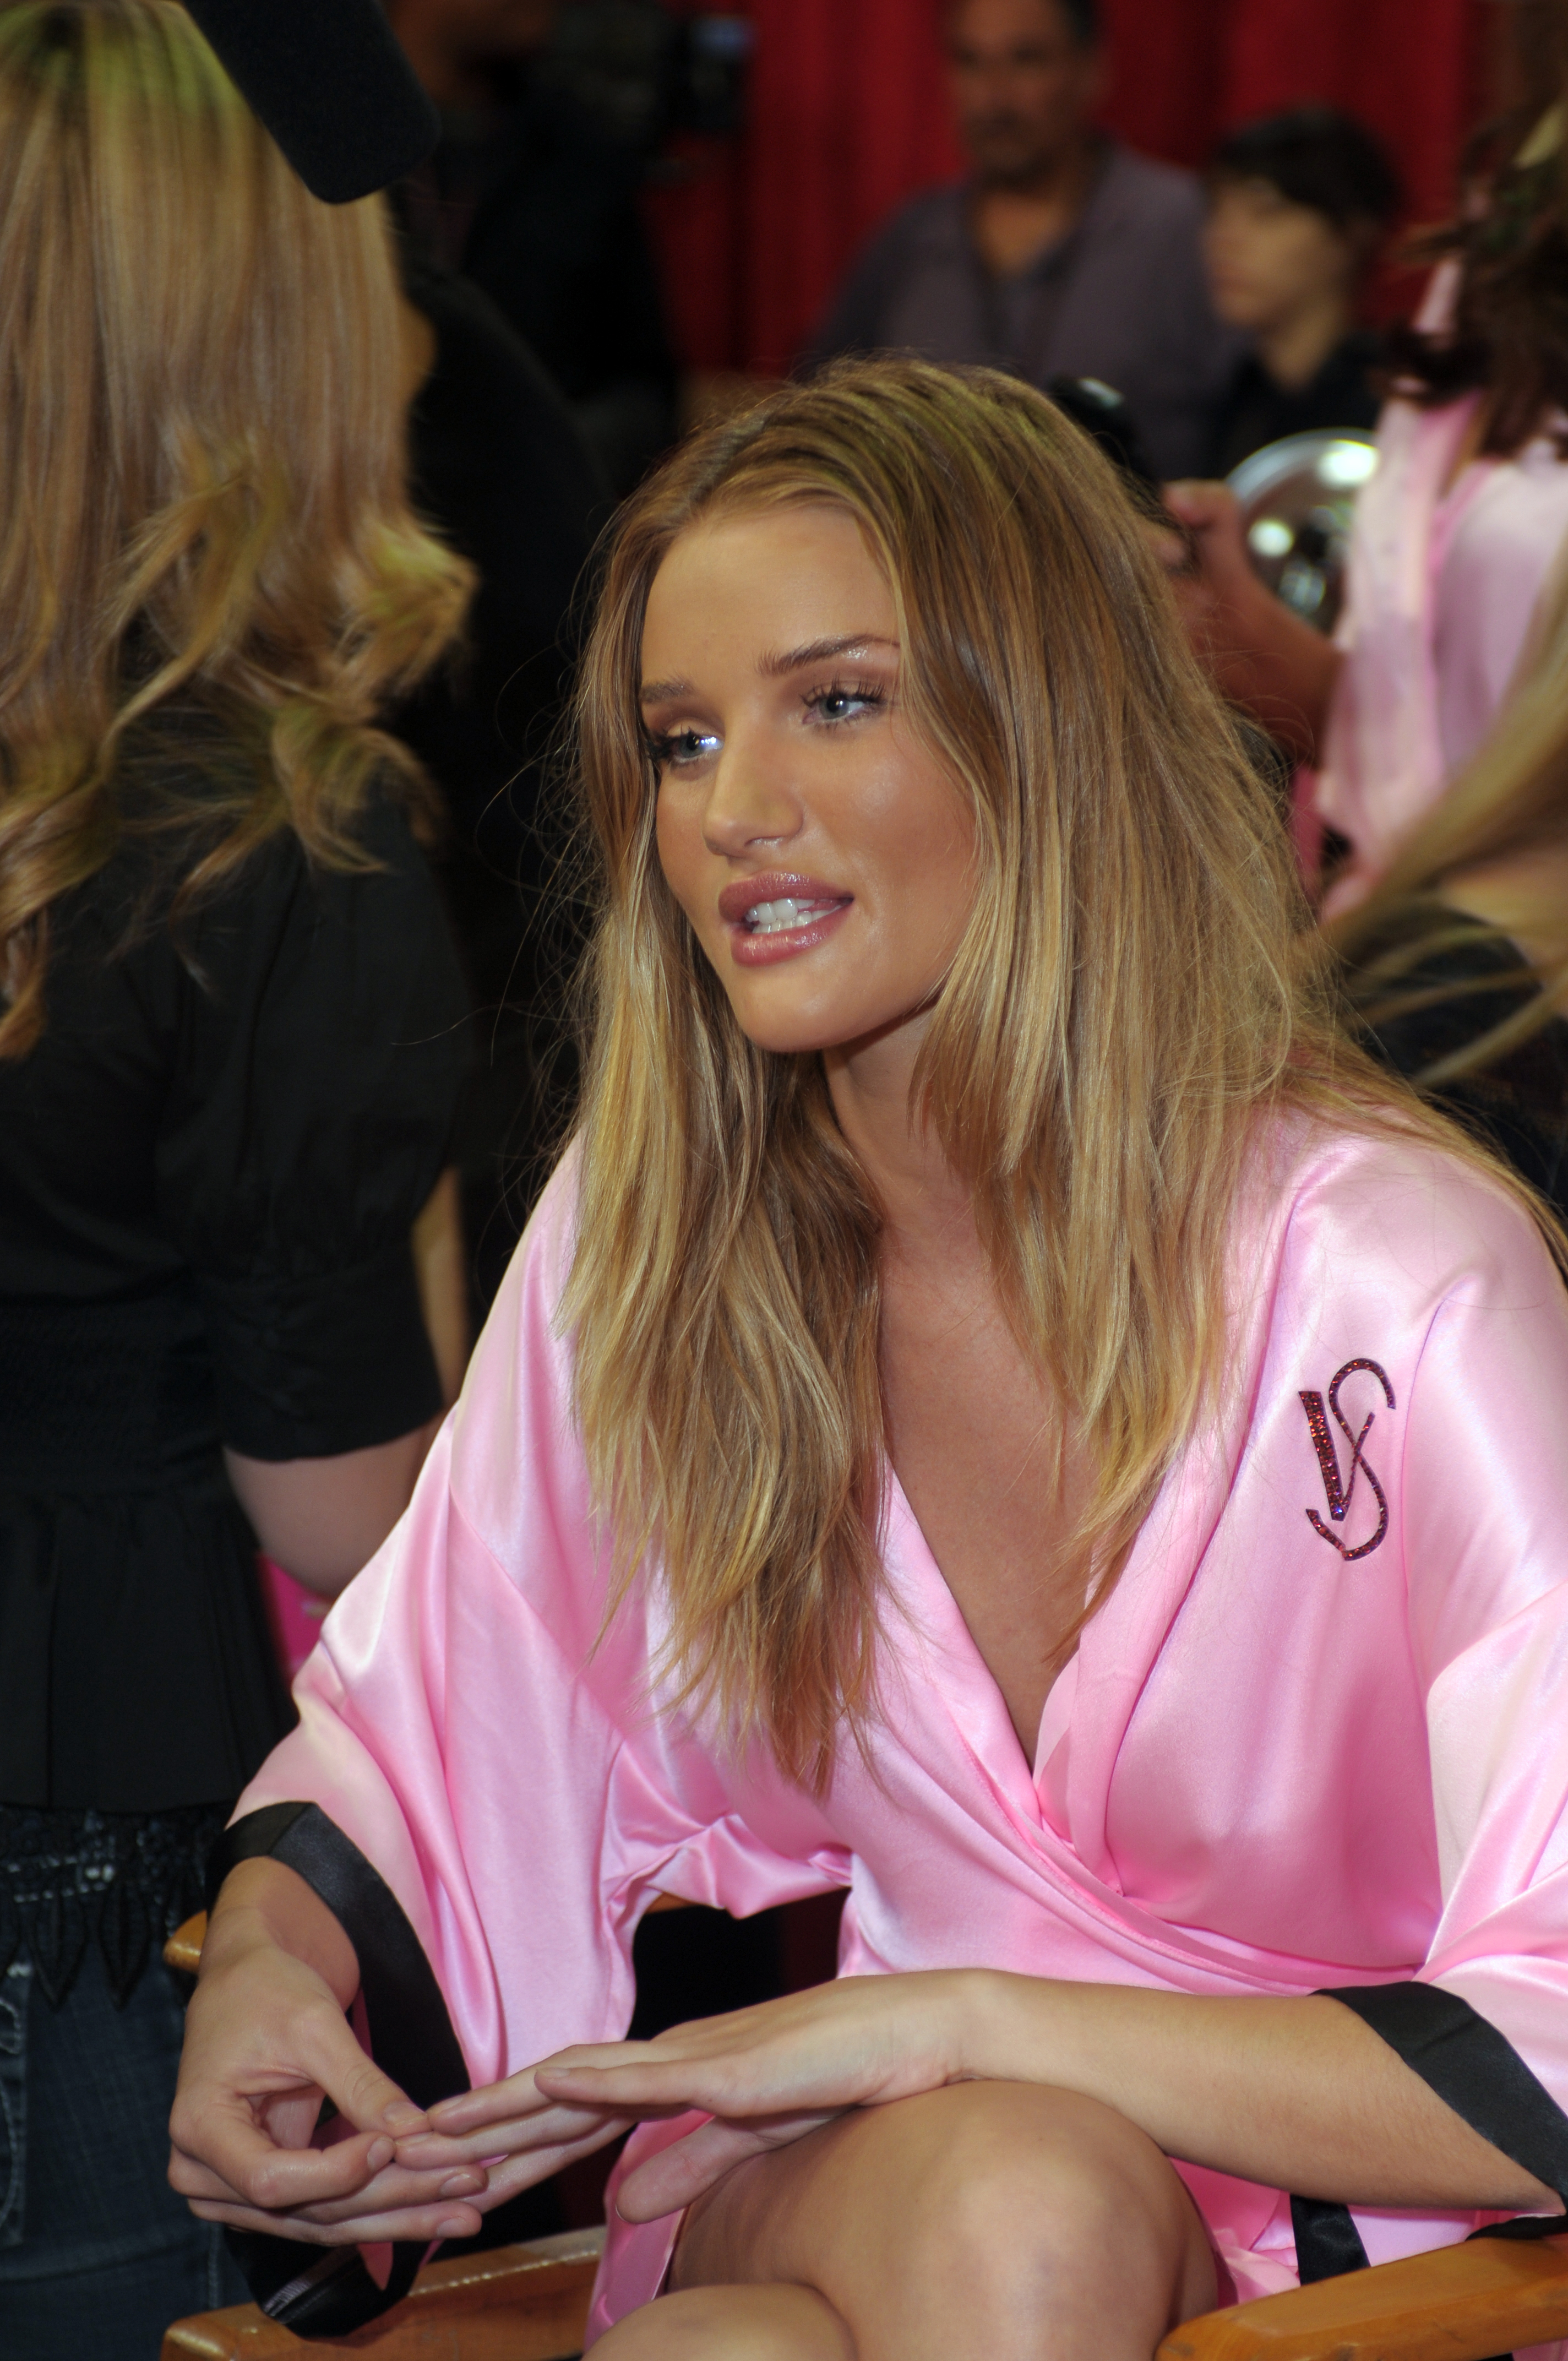 Famous Victoria's Secret Lingerie Model Rosie Huntington-Whiteley Getting Ready Backstage During The Victoria's Secret Fashion Show In New York City.